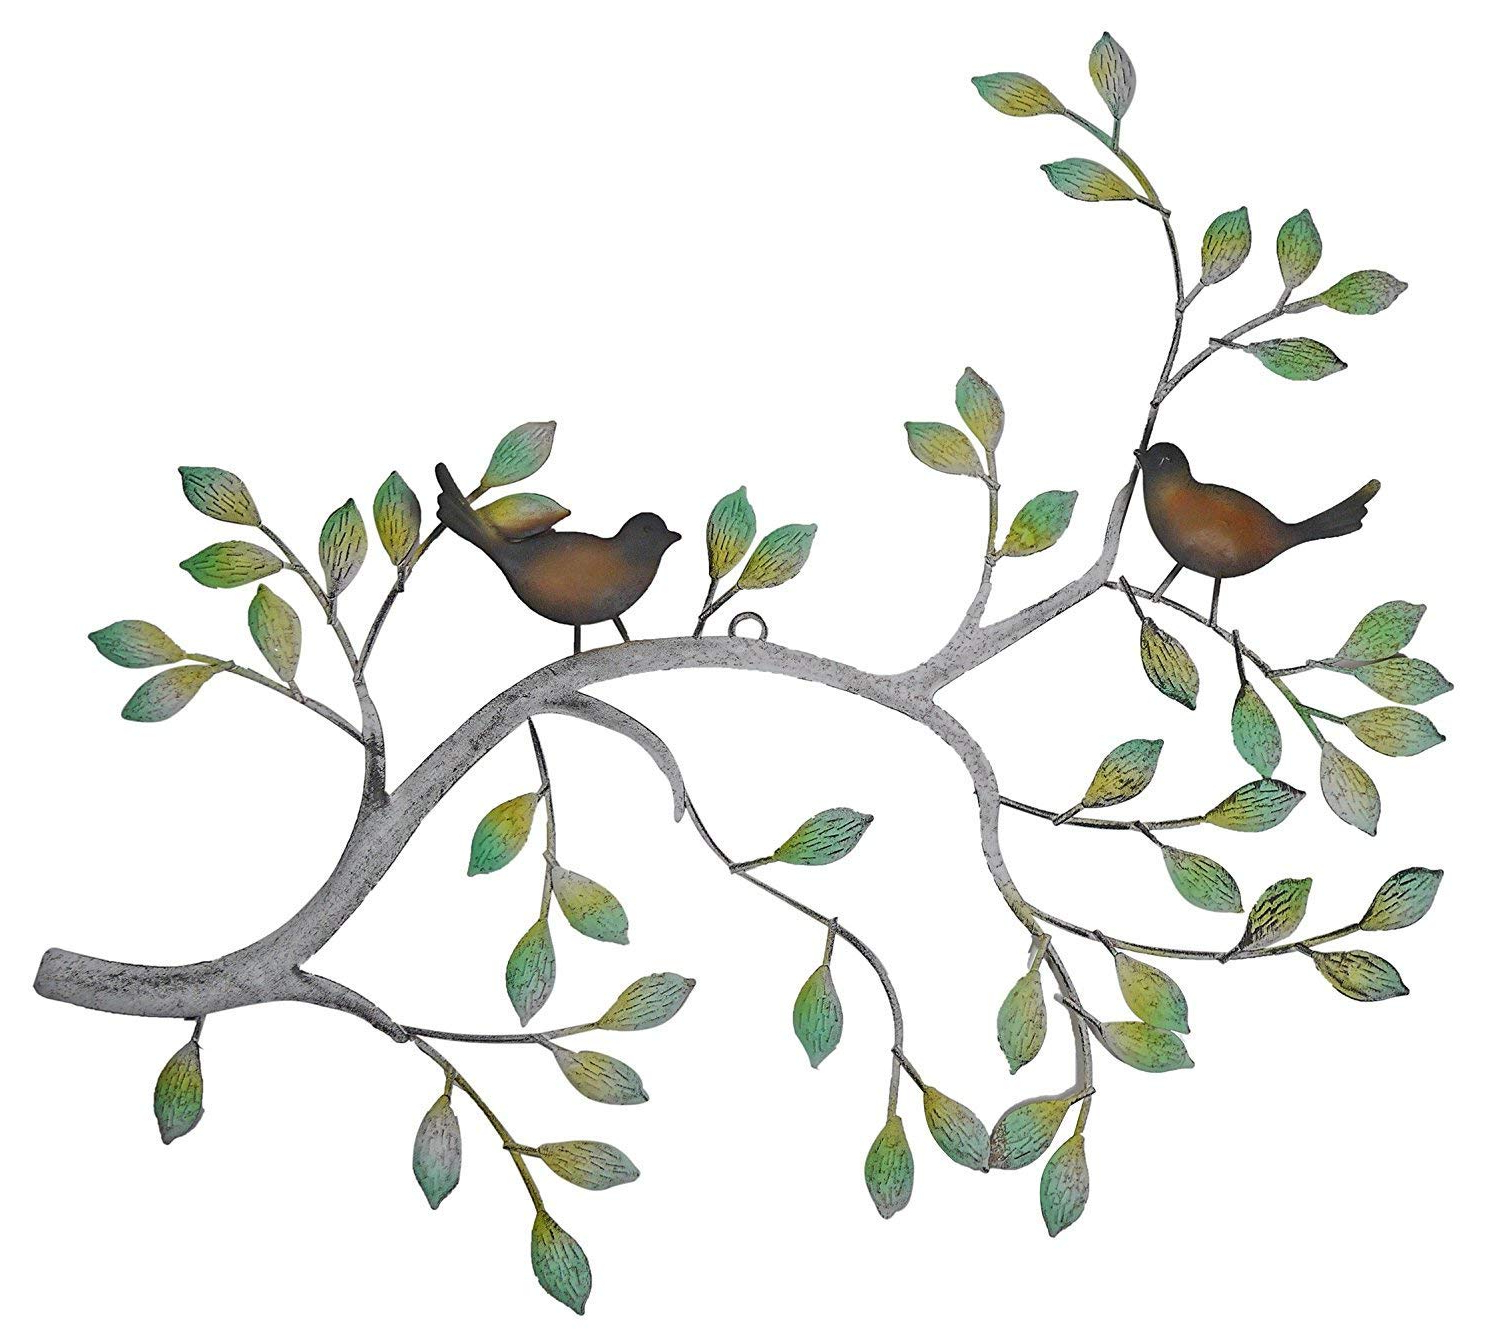 Well Known Leaves Metal Sculpture Wall Decor Intended For Amazon: 24 In Branches W/birds Decorative Metal Wall Decor (View 18 of 20)